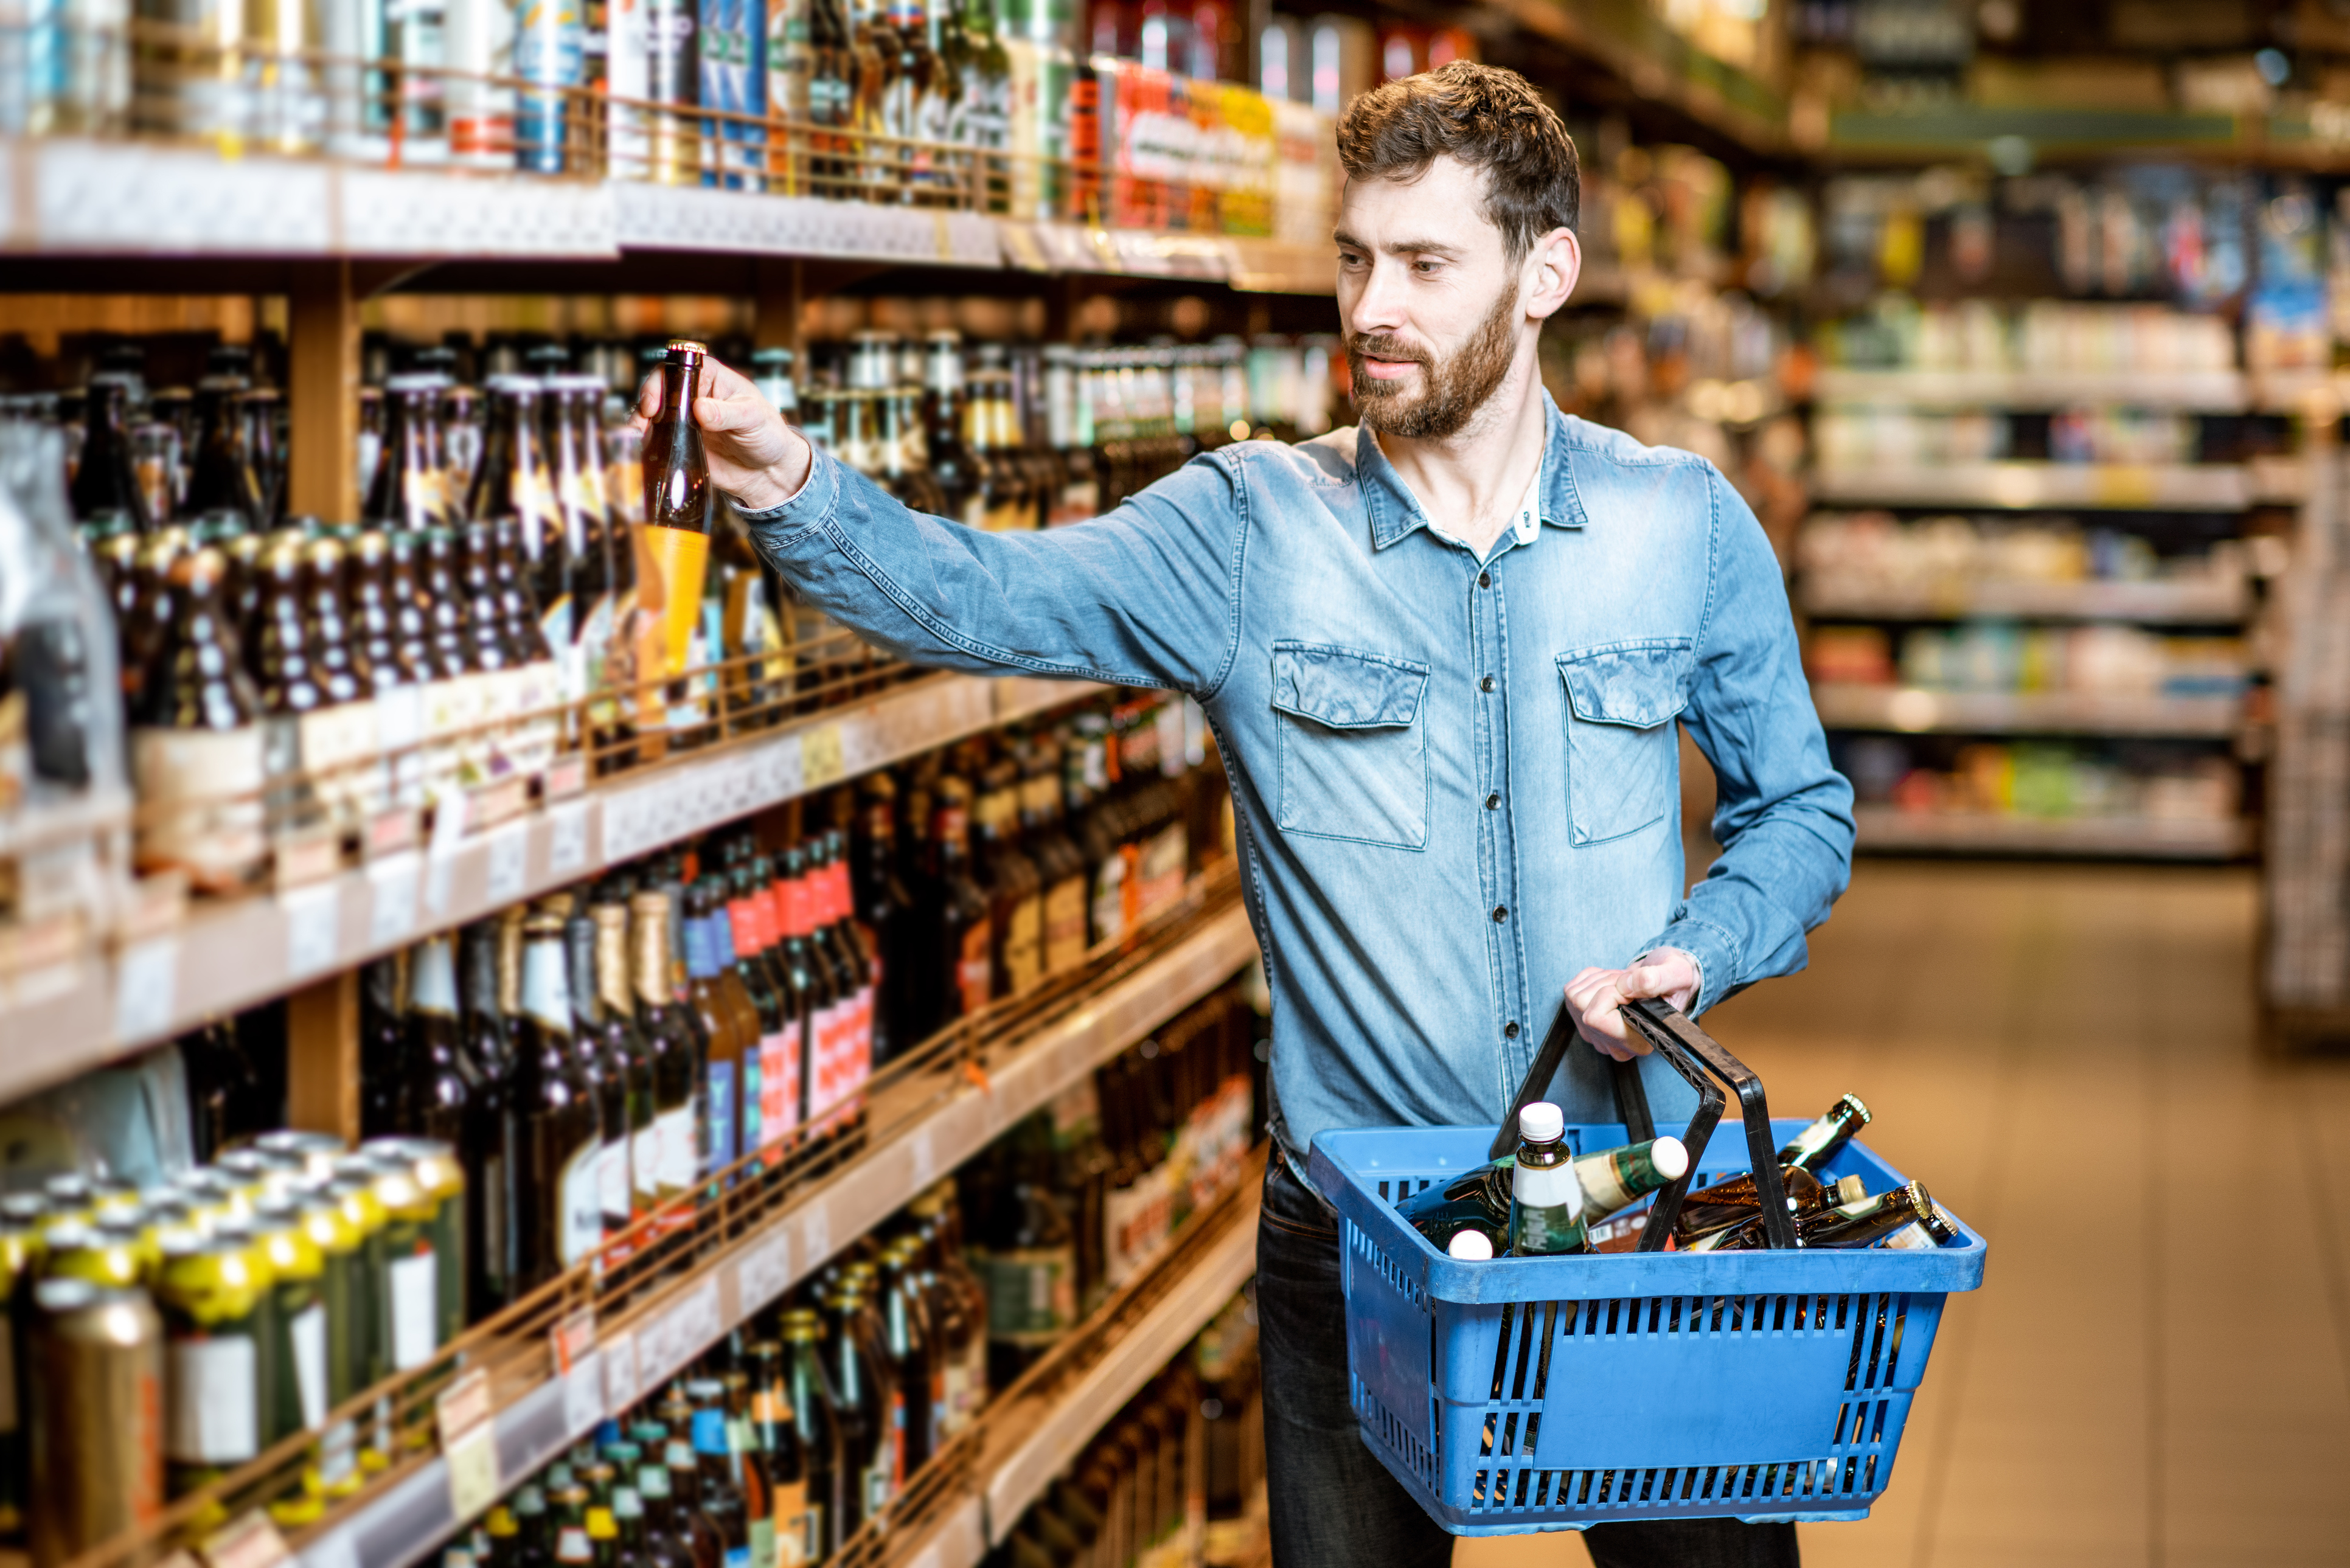 Man buying beer in the supermarket without a mask